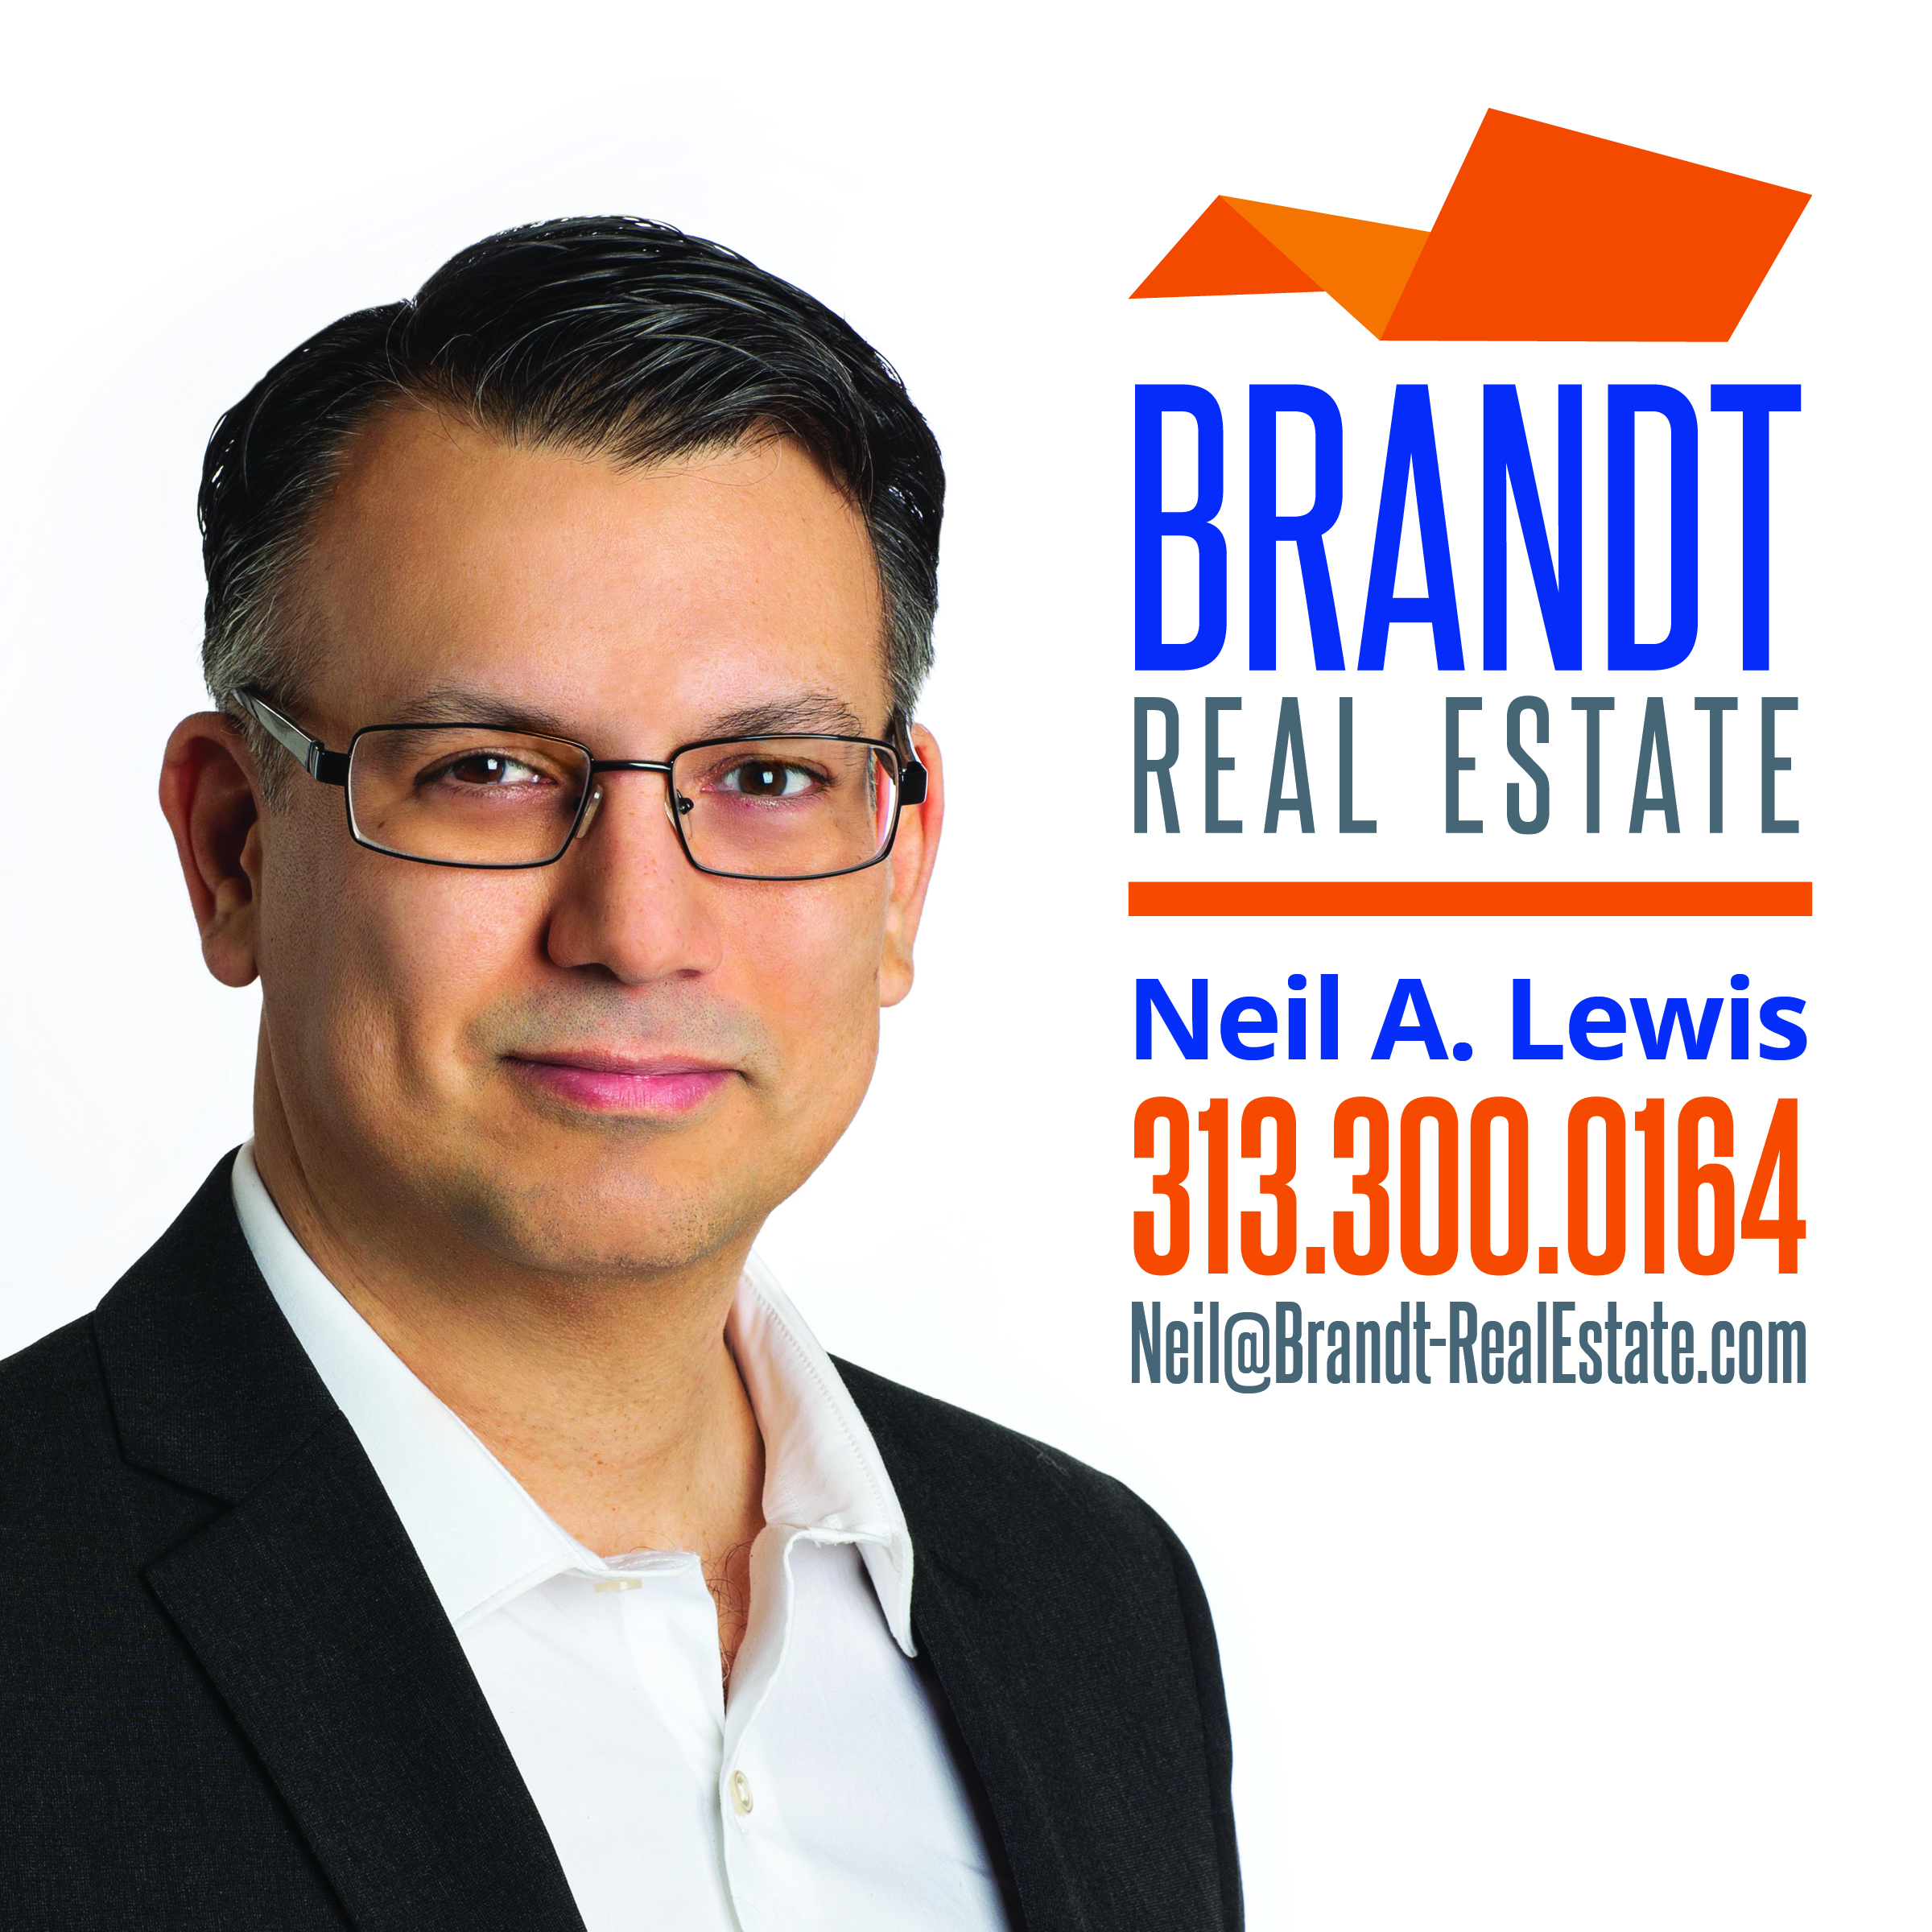 Neil A. Lewis - Brandt Real Estate